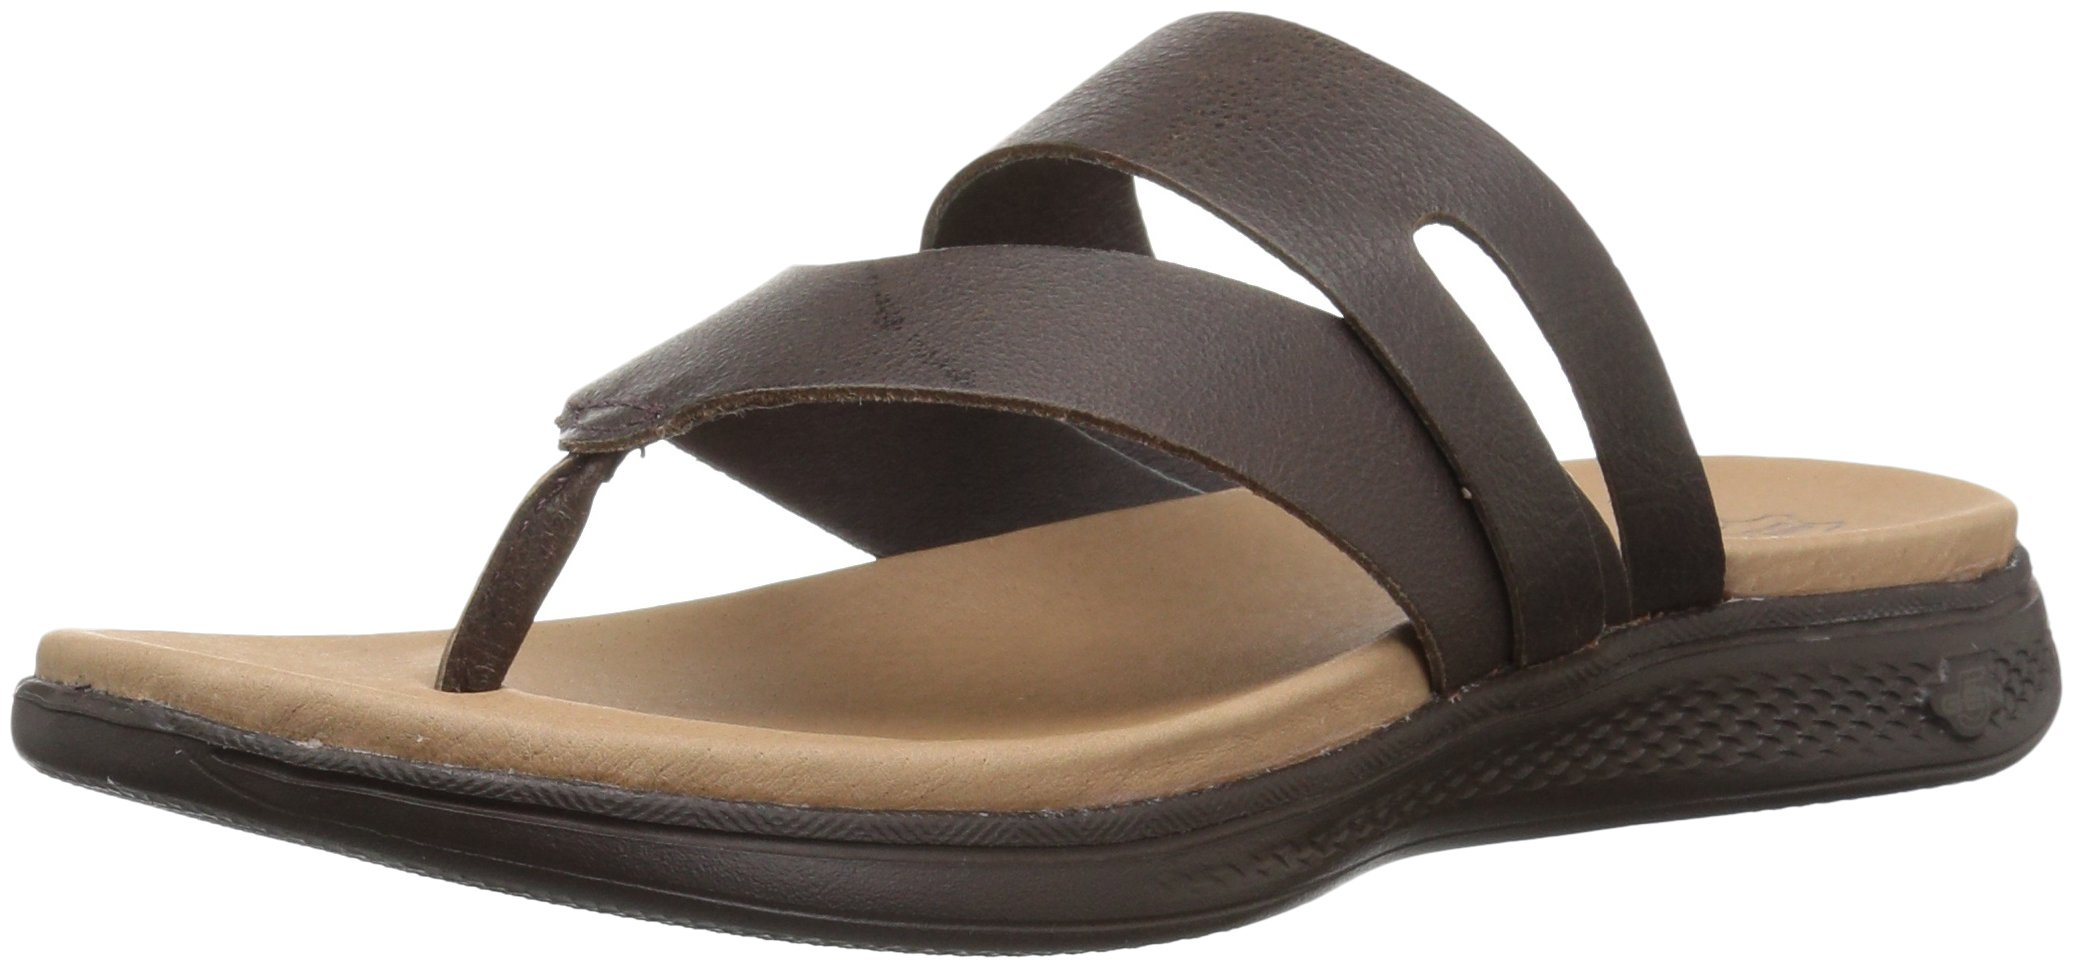 Skechers Performance Women's Luxe Collection-15320 Flip-Flop, Brown, 7 M US